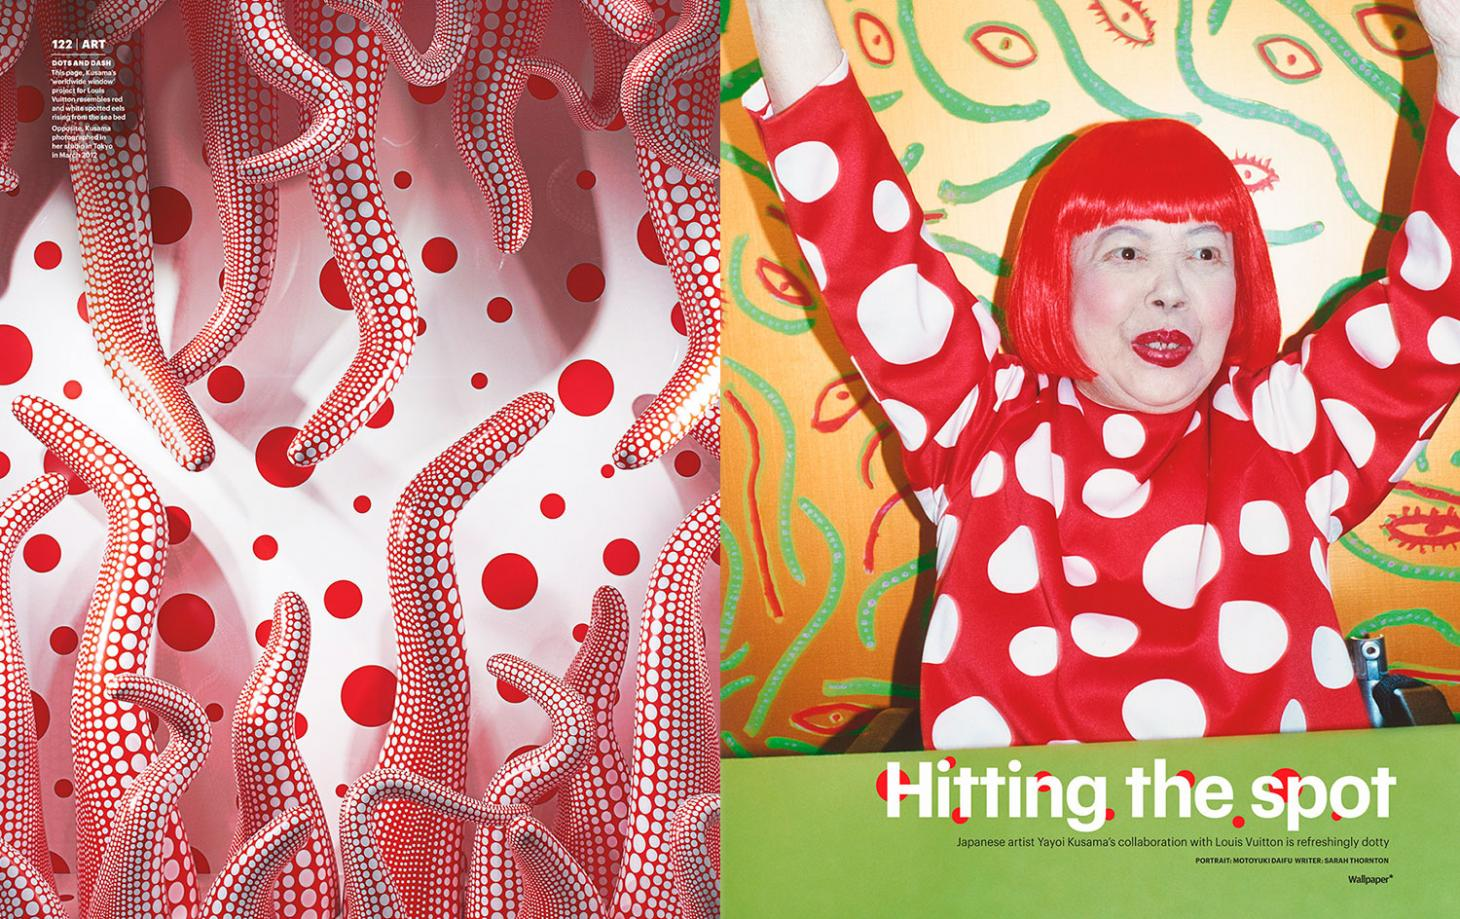 portrait of Yayoi Kusama and red and white polka dot work for Louis Vuttion